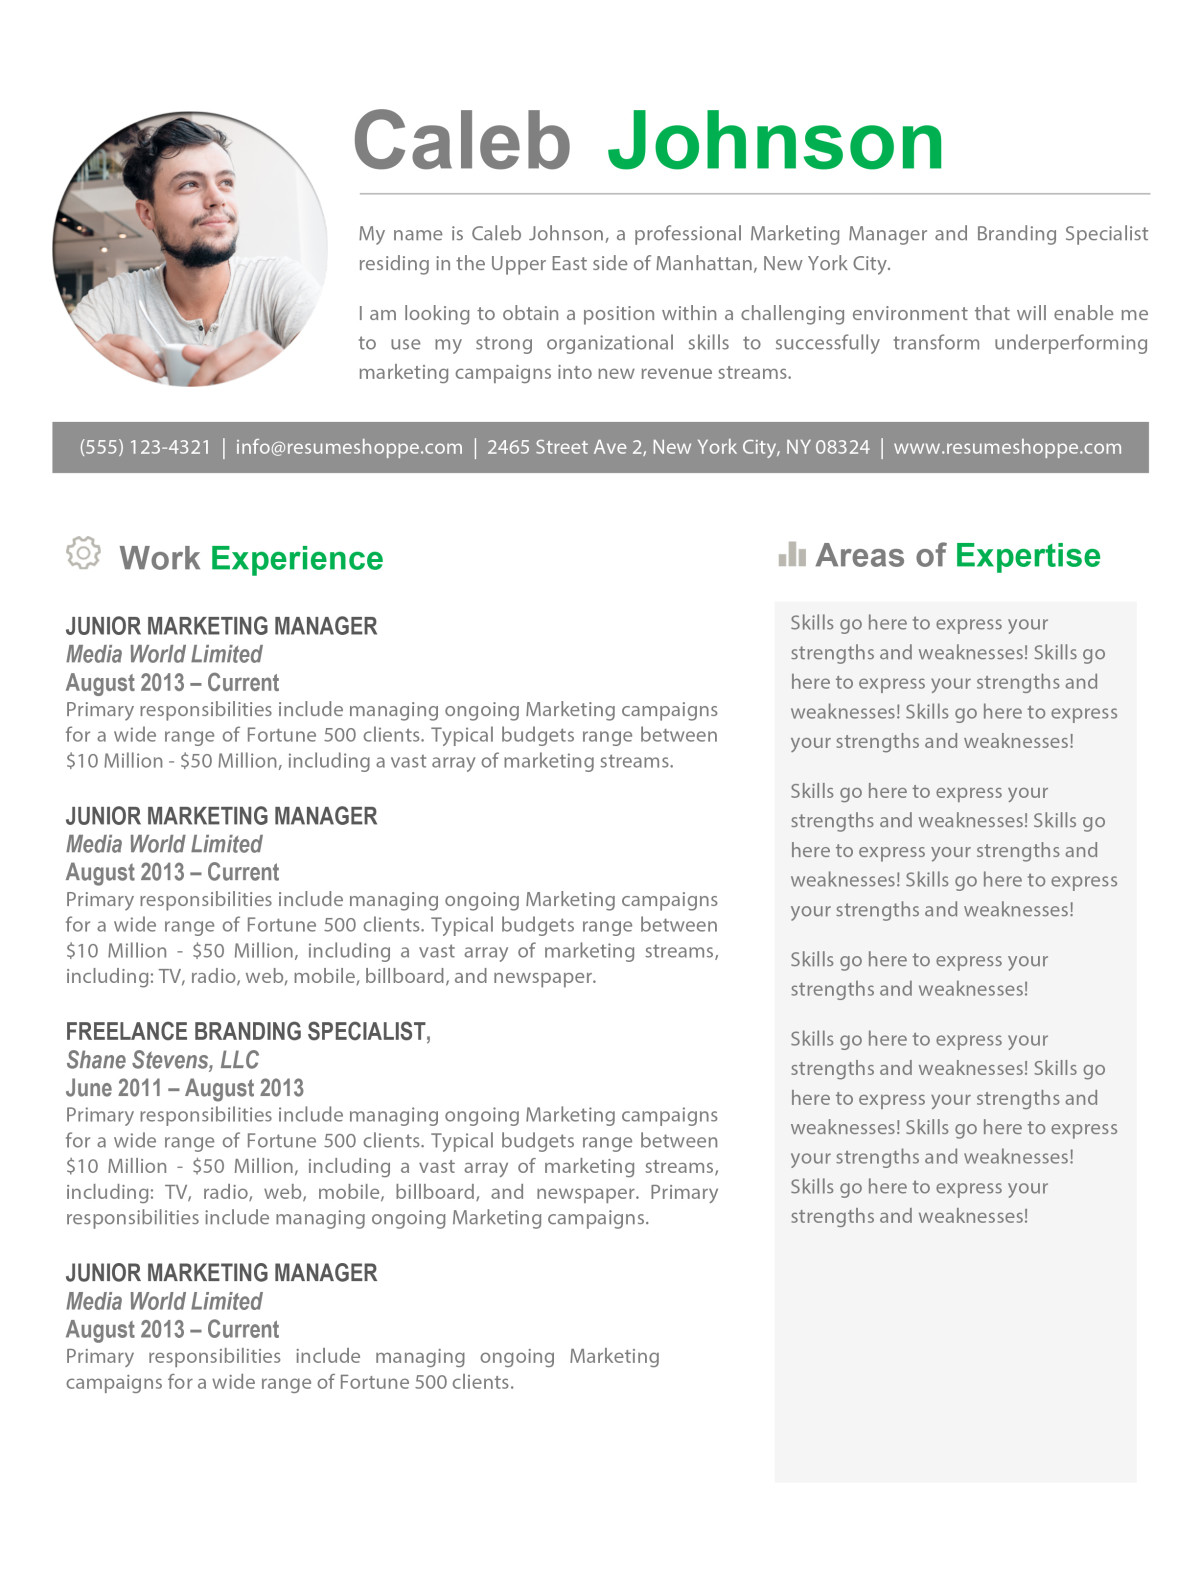 Resume On Microsoft Word Mac. The Caleb Resume . Resume On Microsoft Word  Mac  Microsoft Word Resume Template 2013